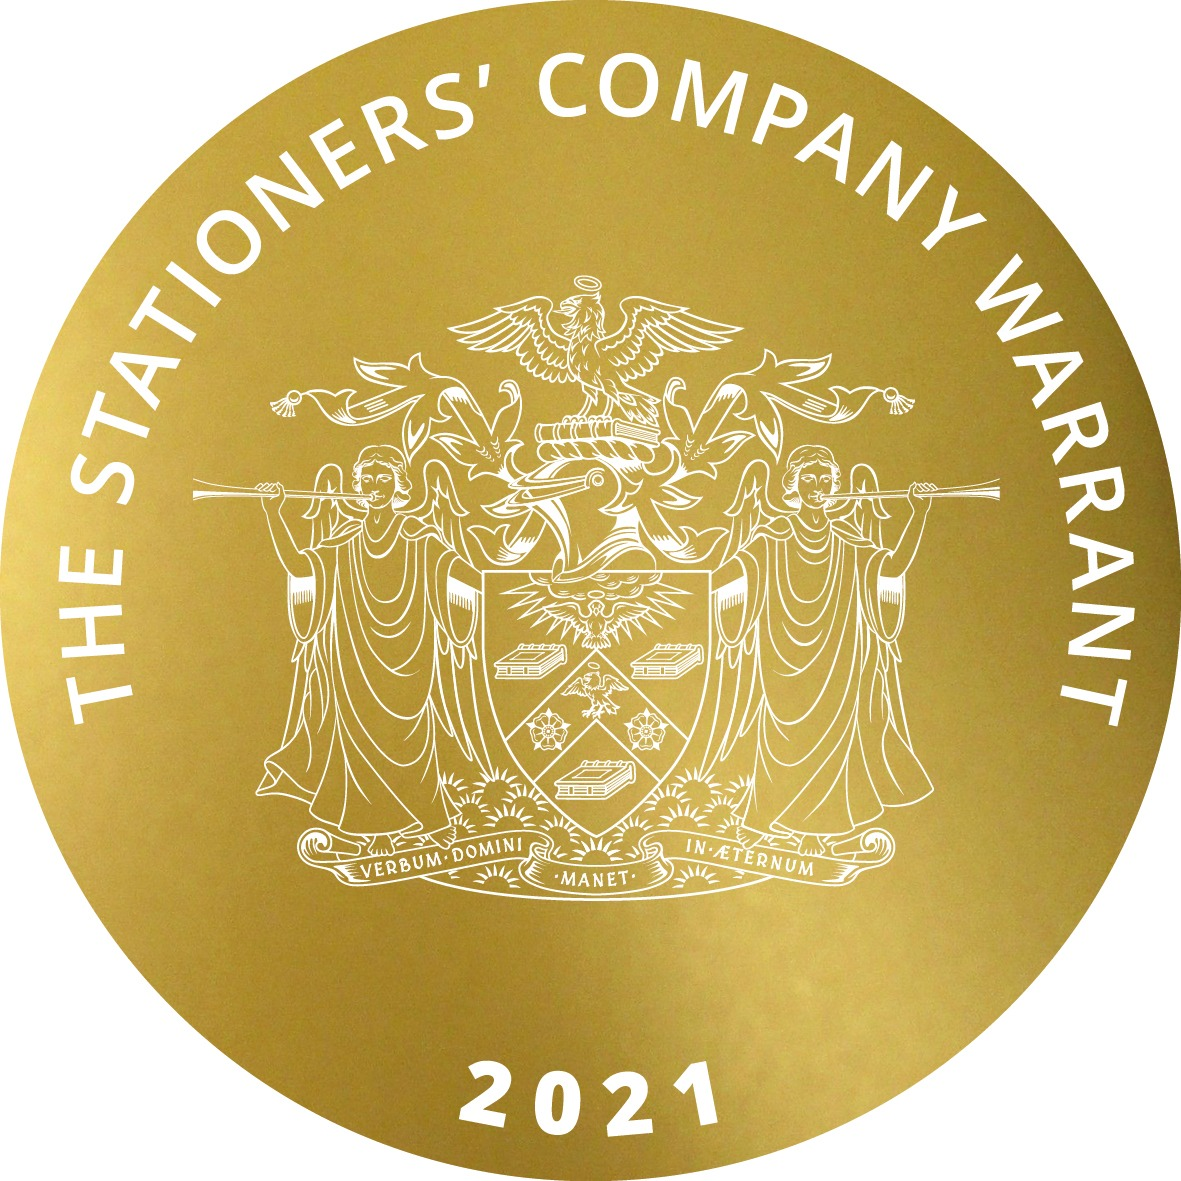 STATIONERS WARRANT GOLD TEXTURE